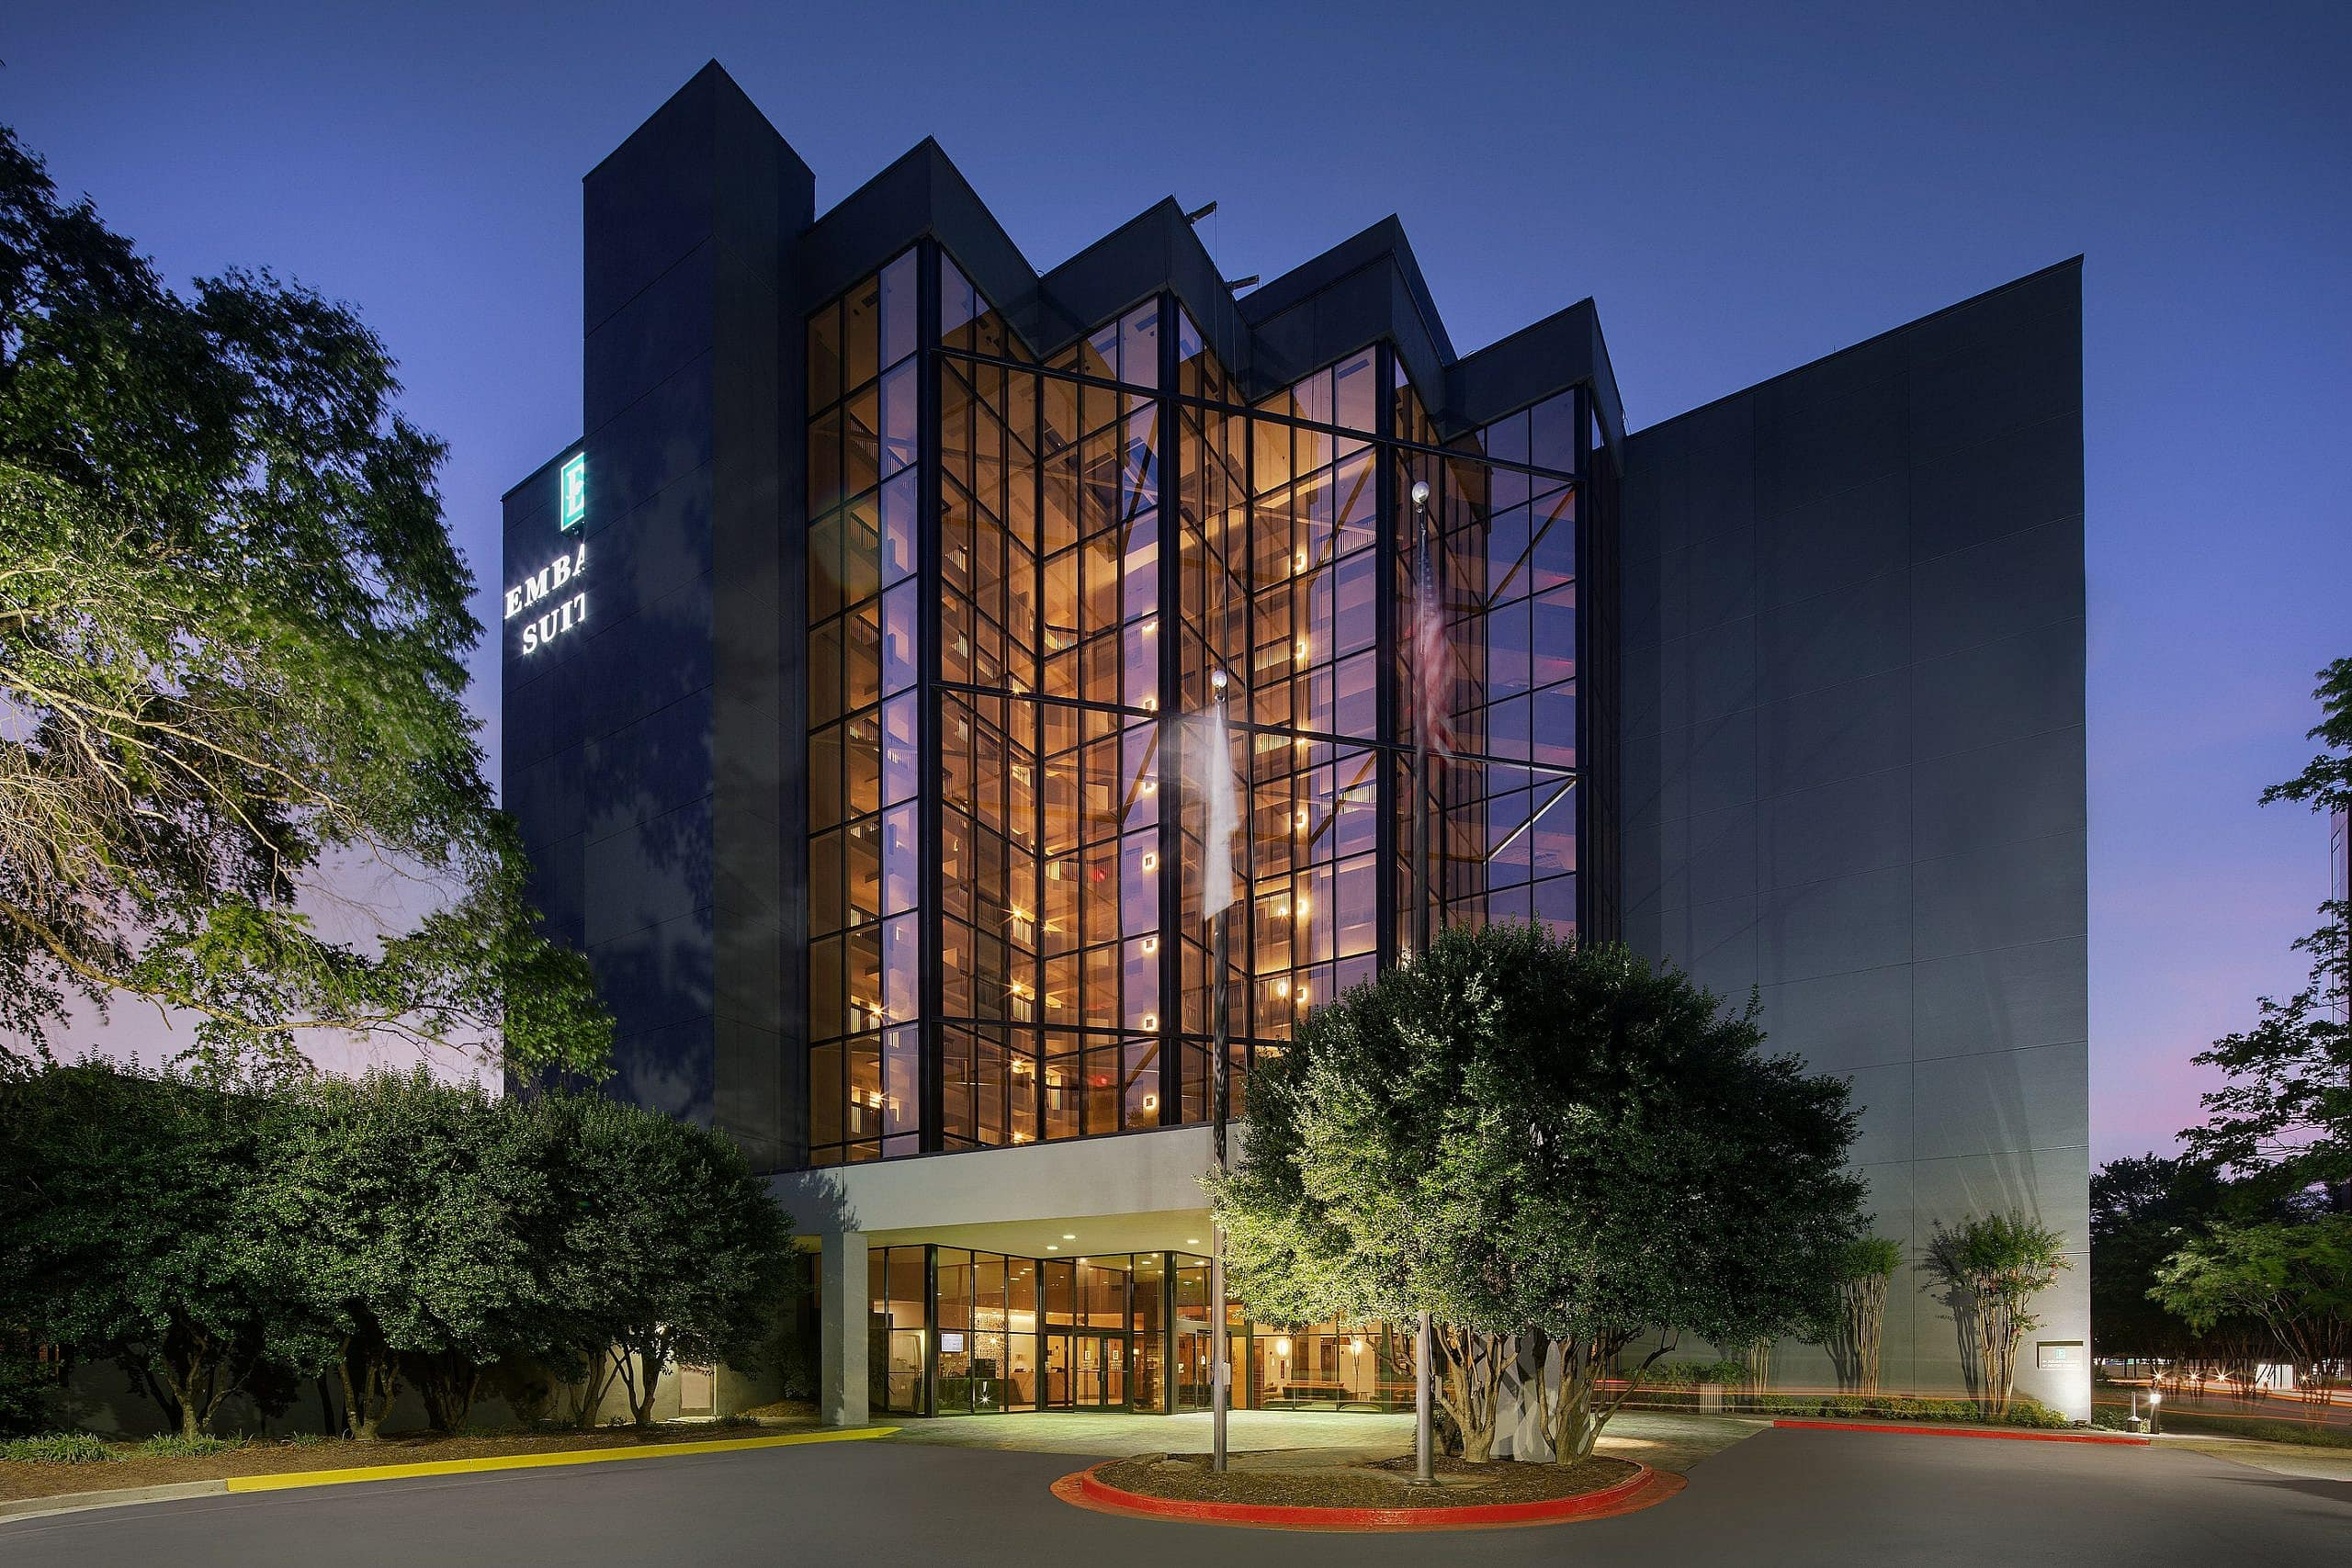 Evening shot of the front of the Embassy Suites Atlanta Perimiter